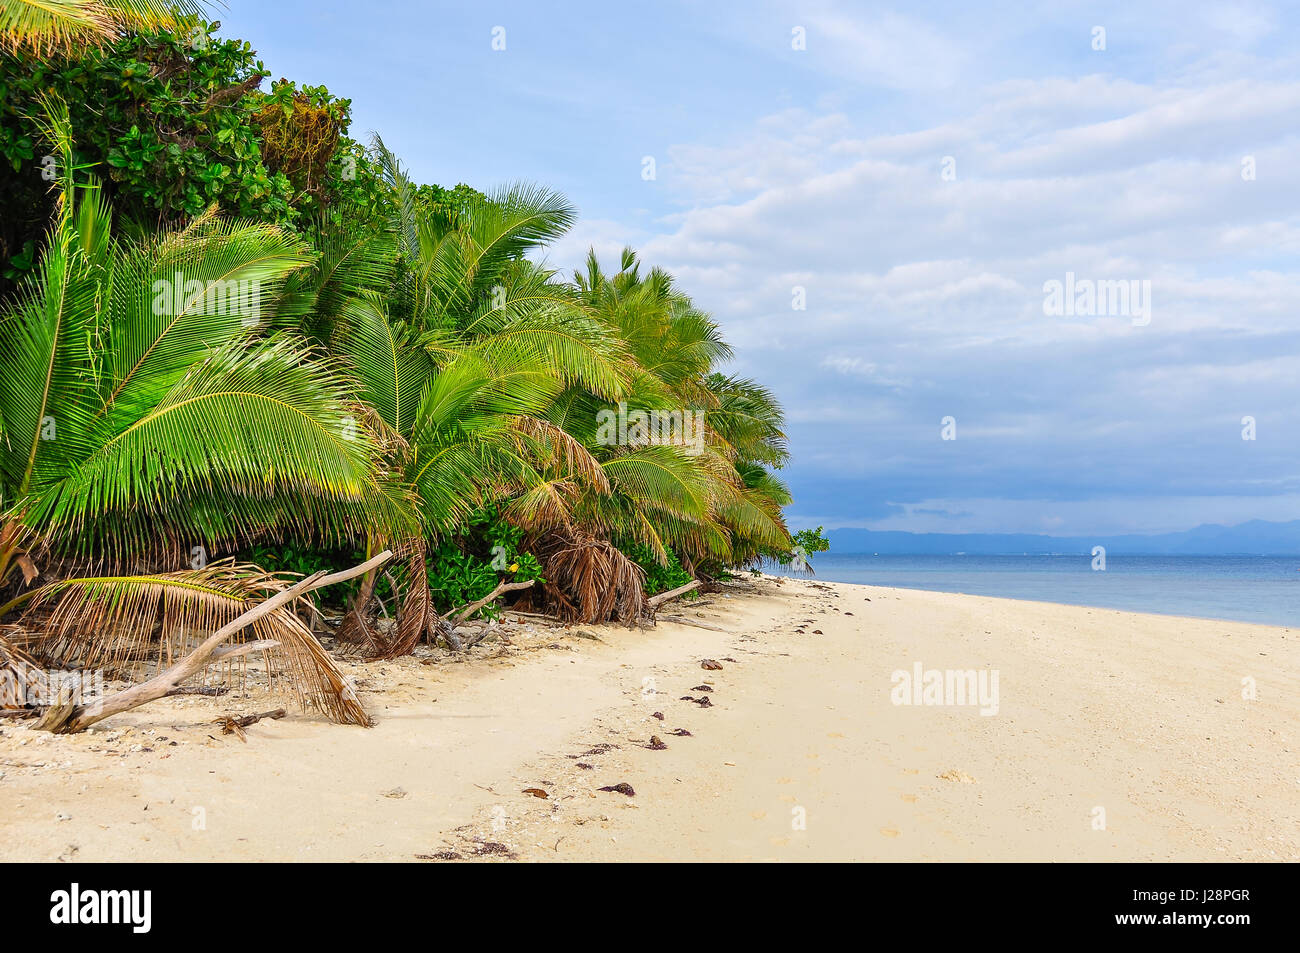 Strolling on the beach of Bounty Island in Fiji - Stock Image